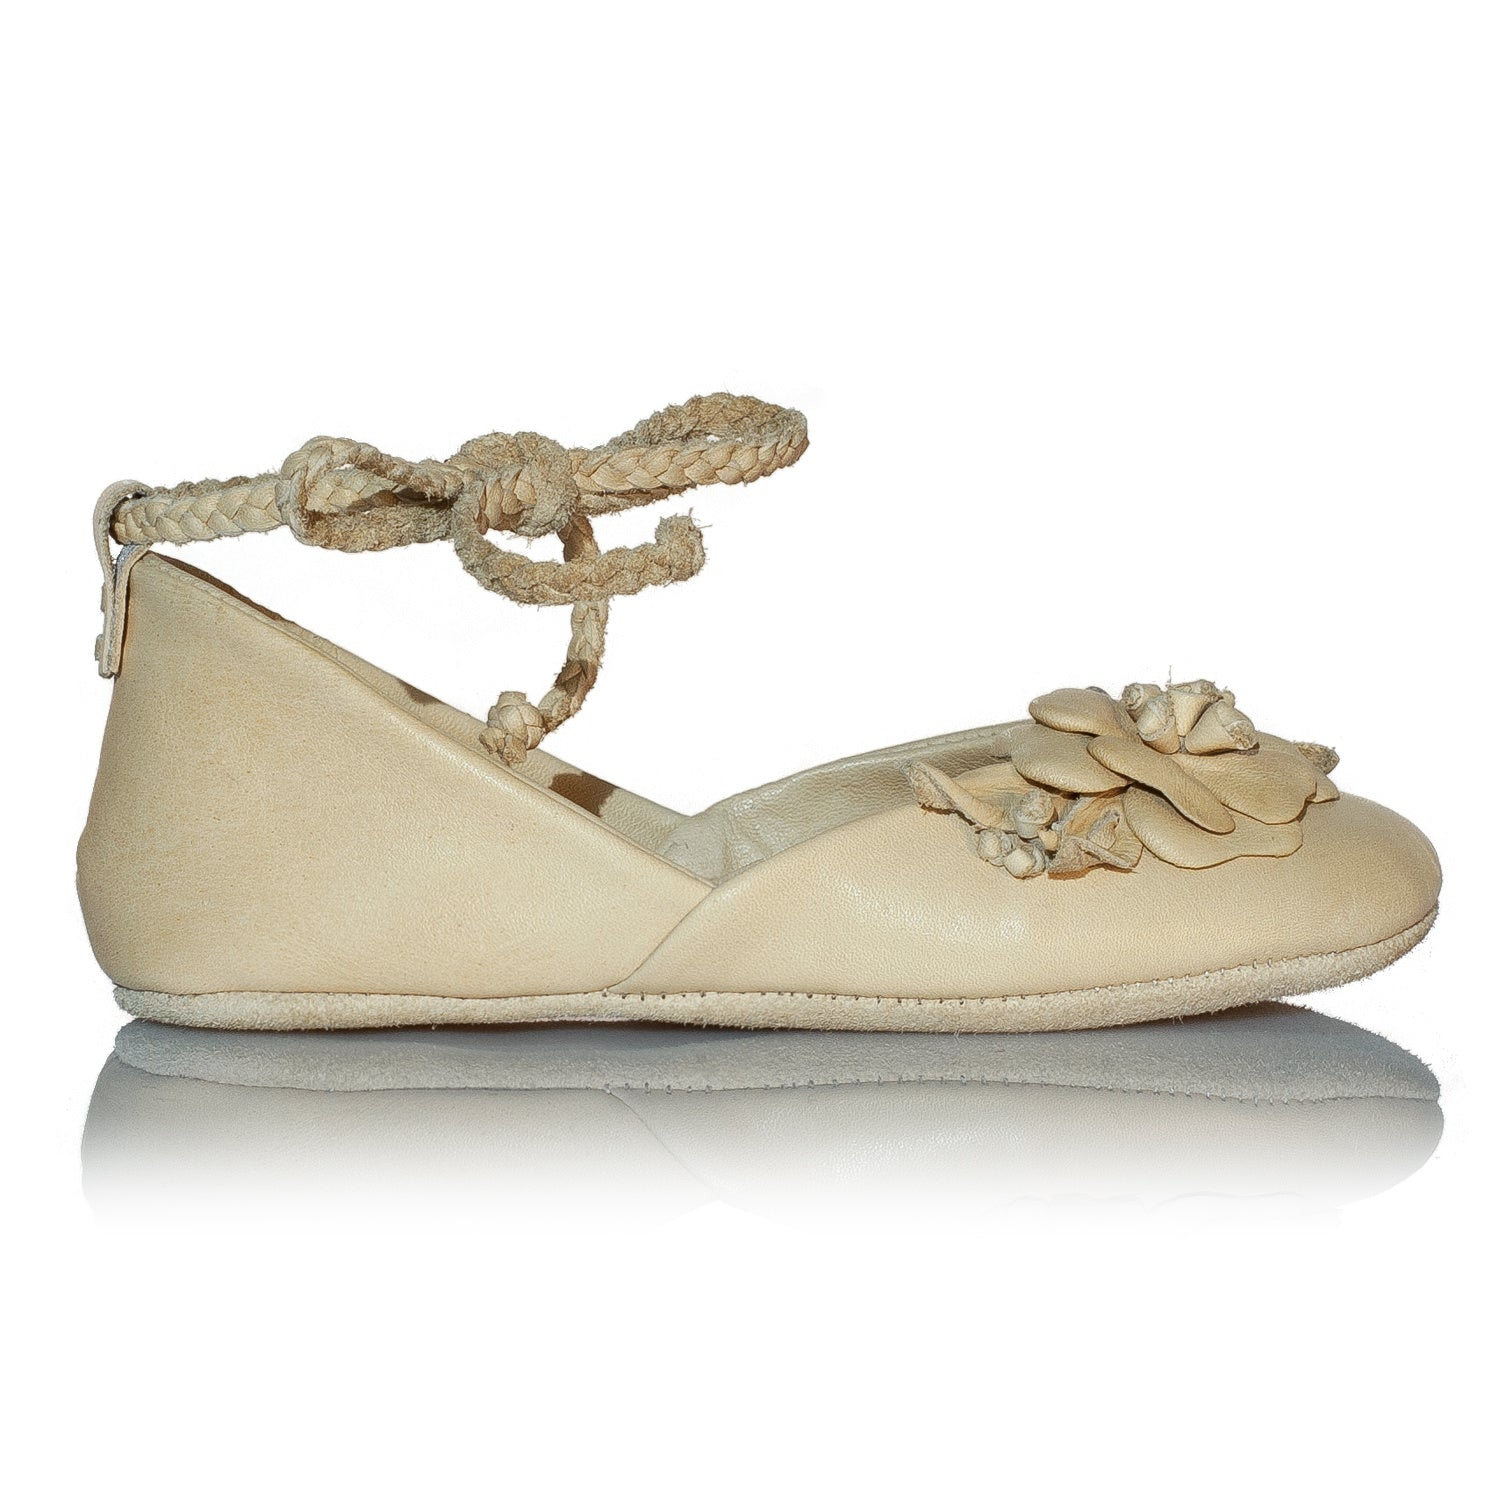 Vibys-Braided-Floral-Leather-Baby-Girl-Ballerinas-Mari-side-view